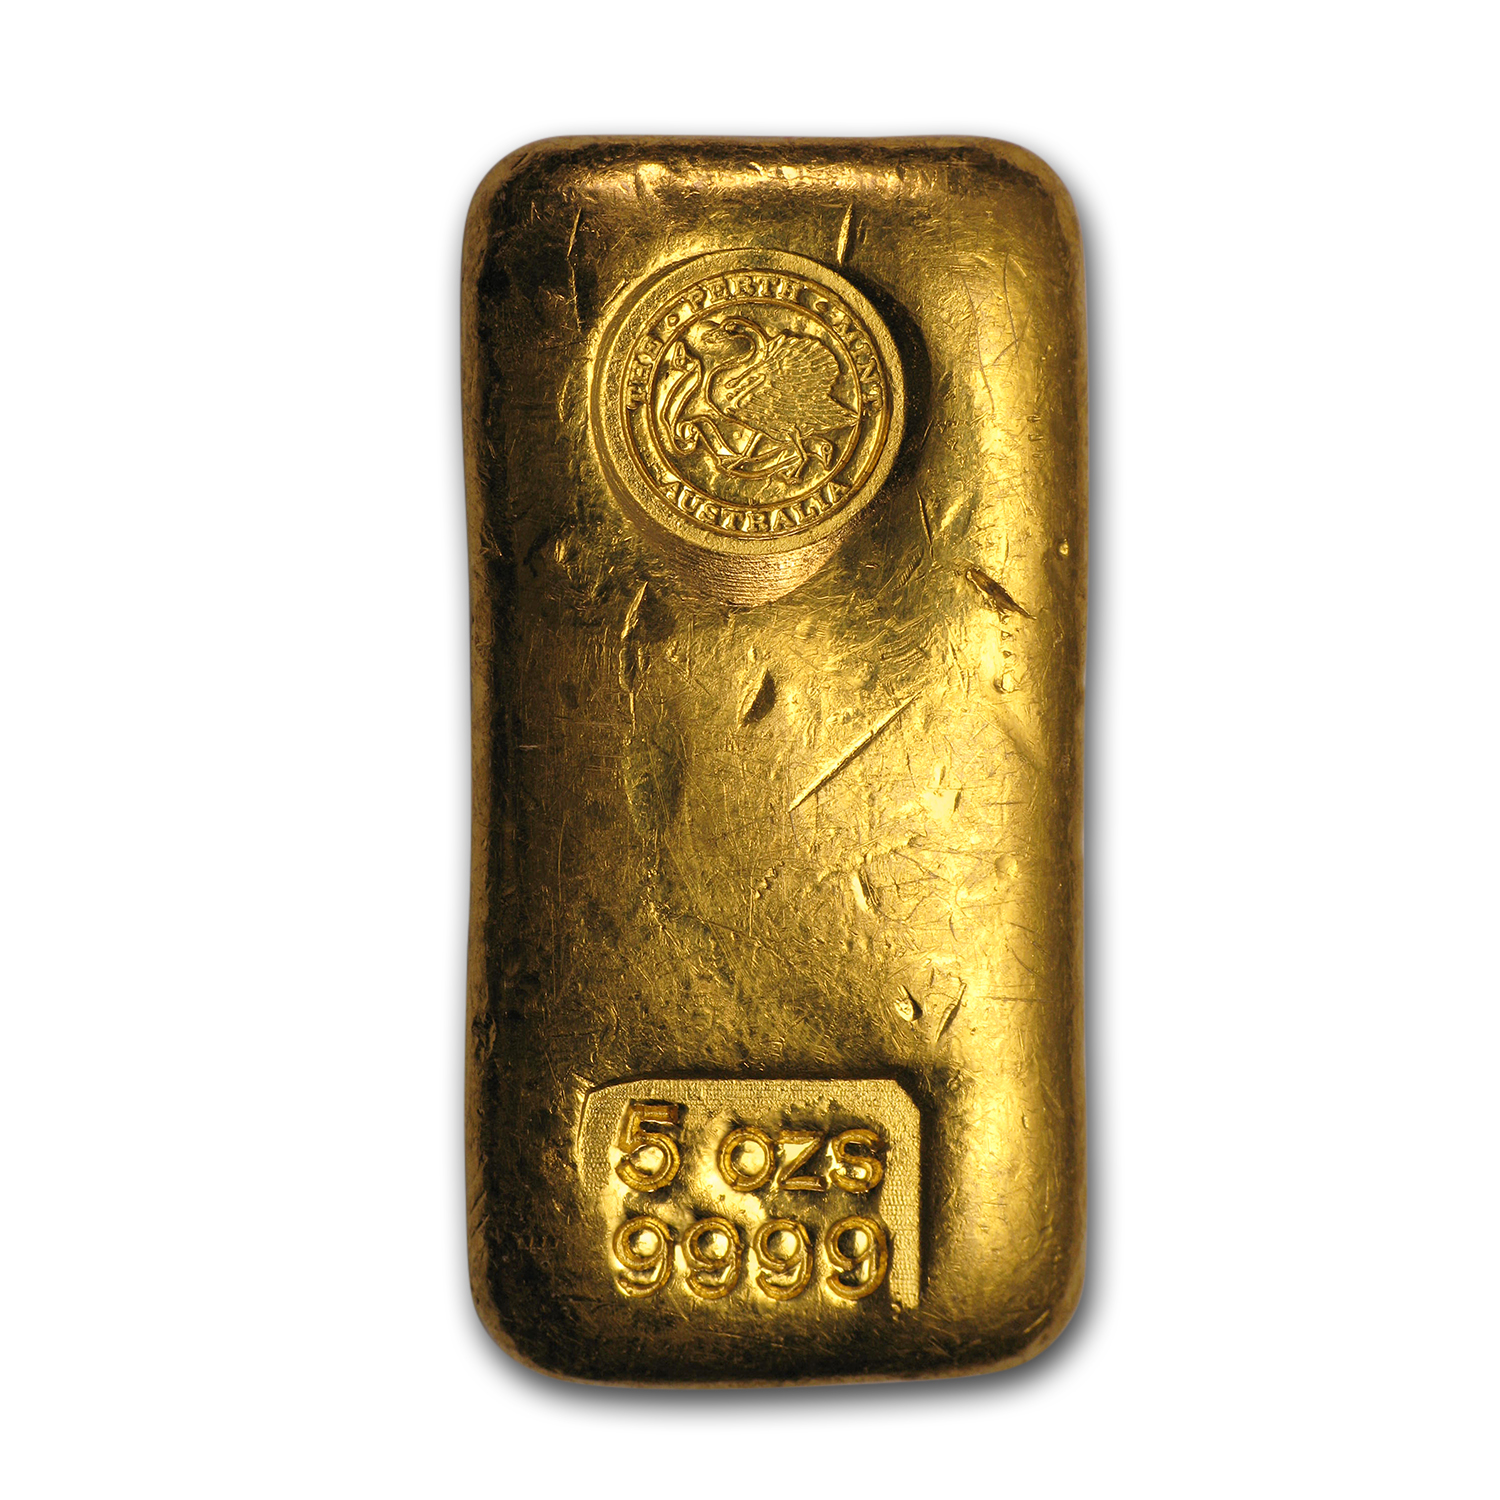 5 oz Gold Bar - Perth Mint (Loaf-Style)